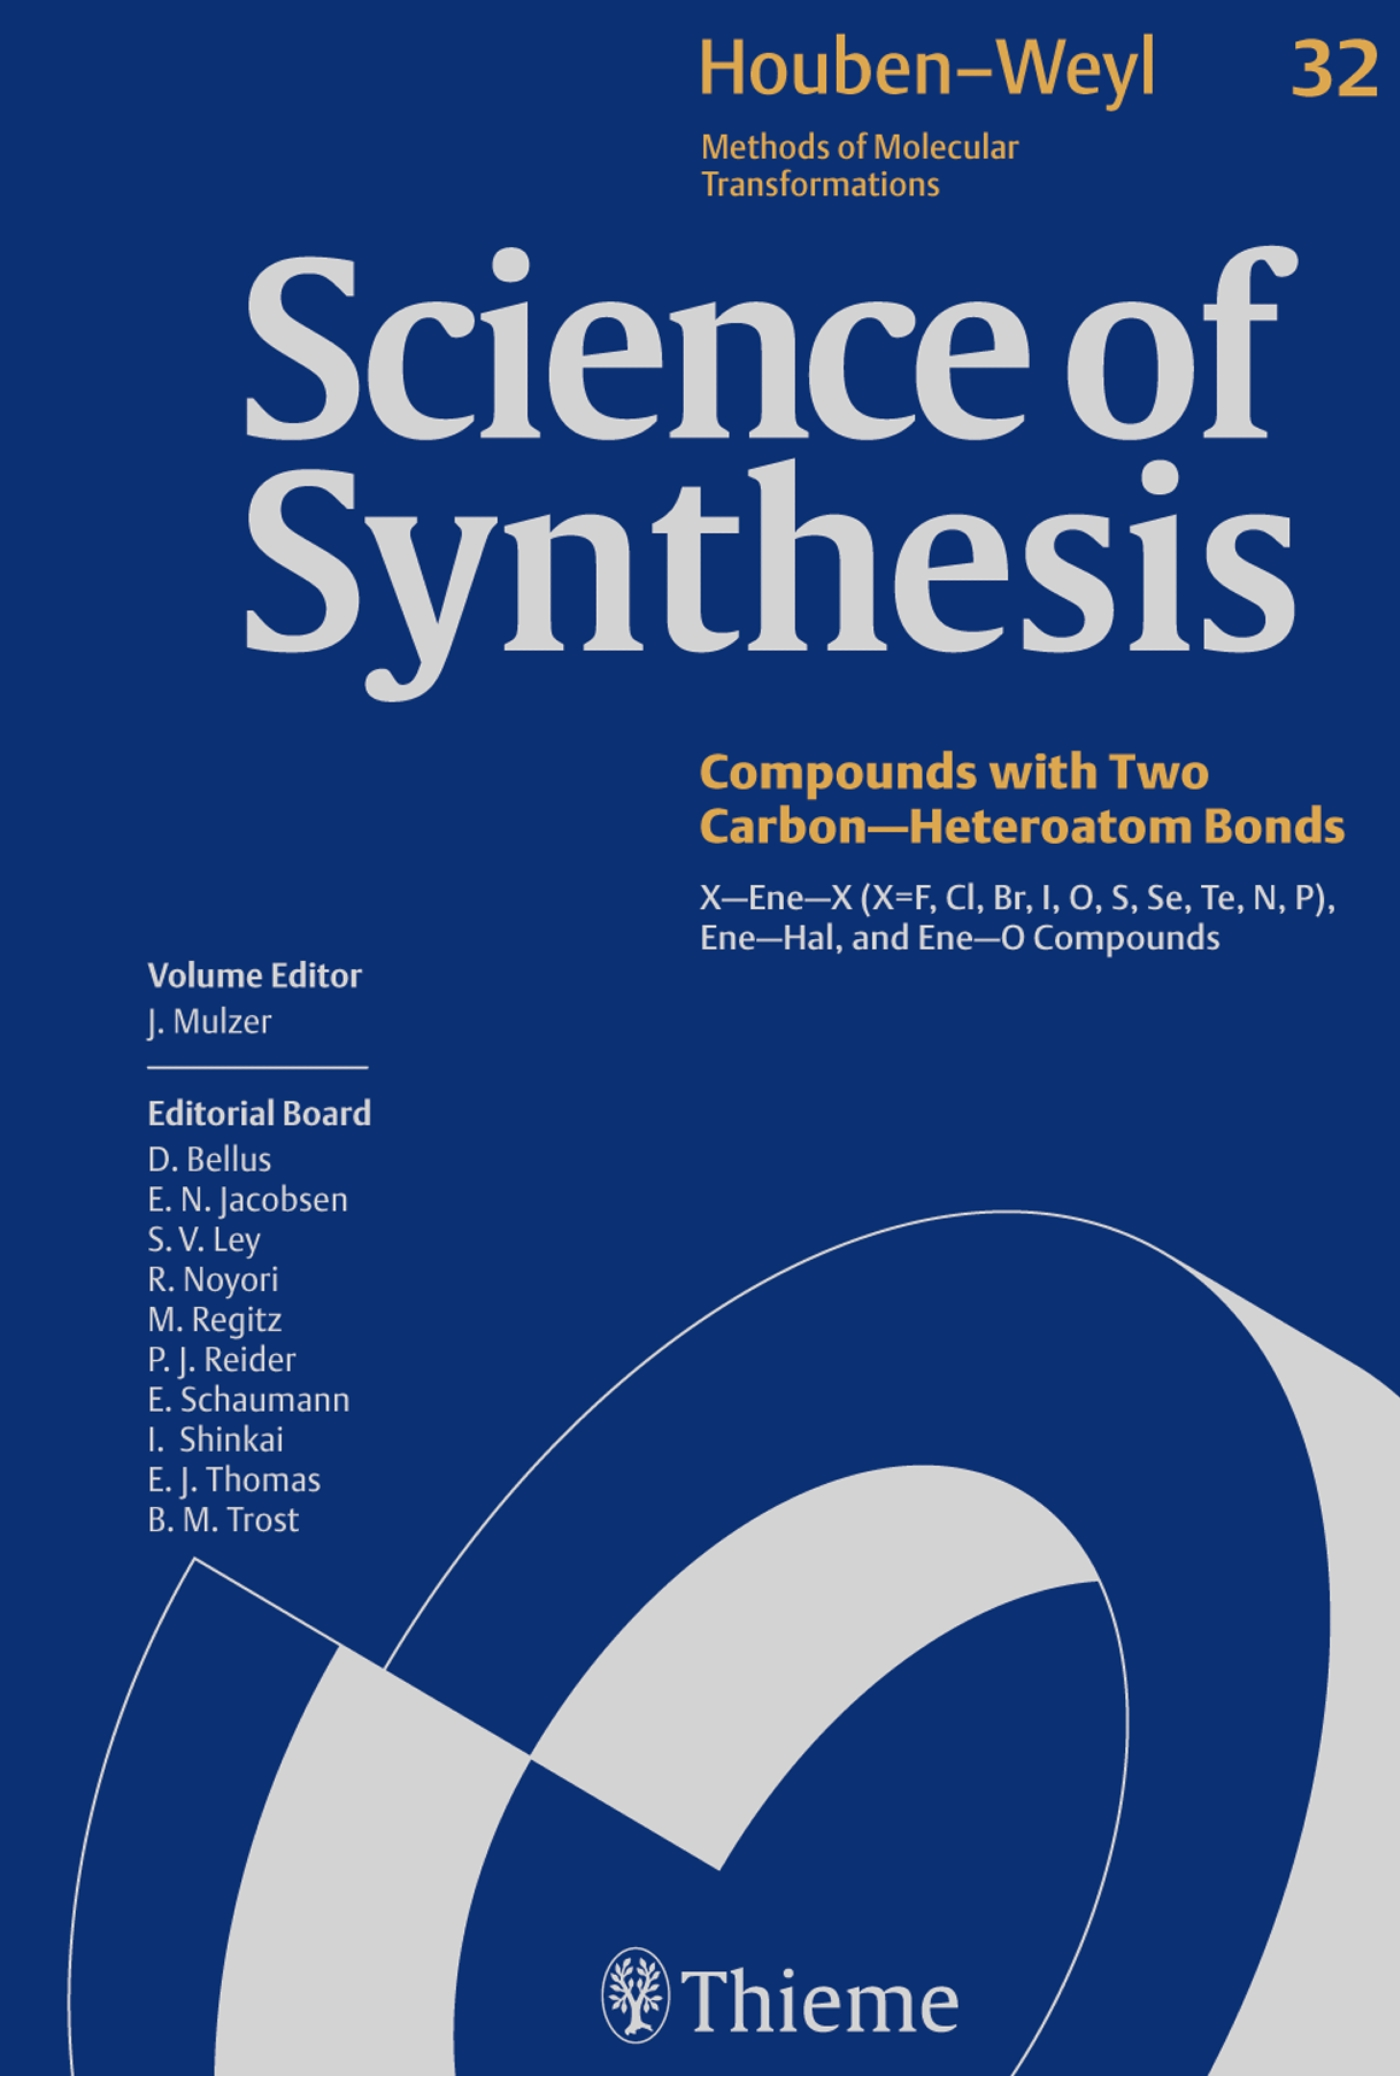 Science of Synthesis: Houben-Weyl Methods of Molecular Transformations  Vol. 32